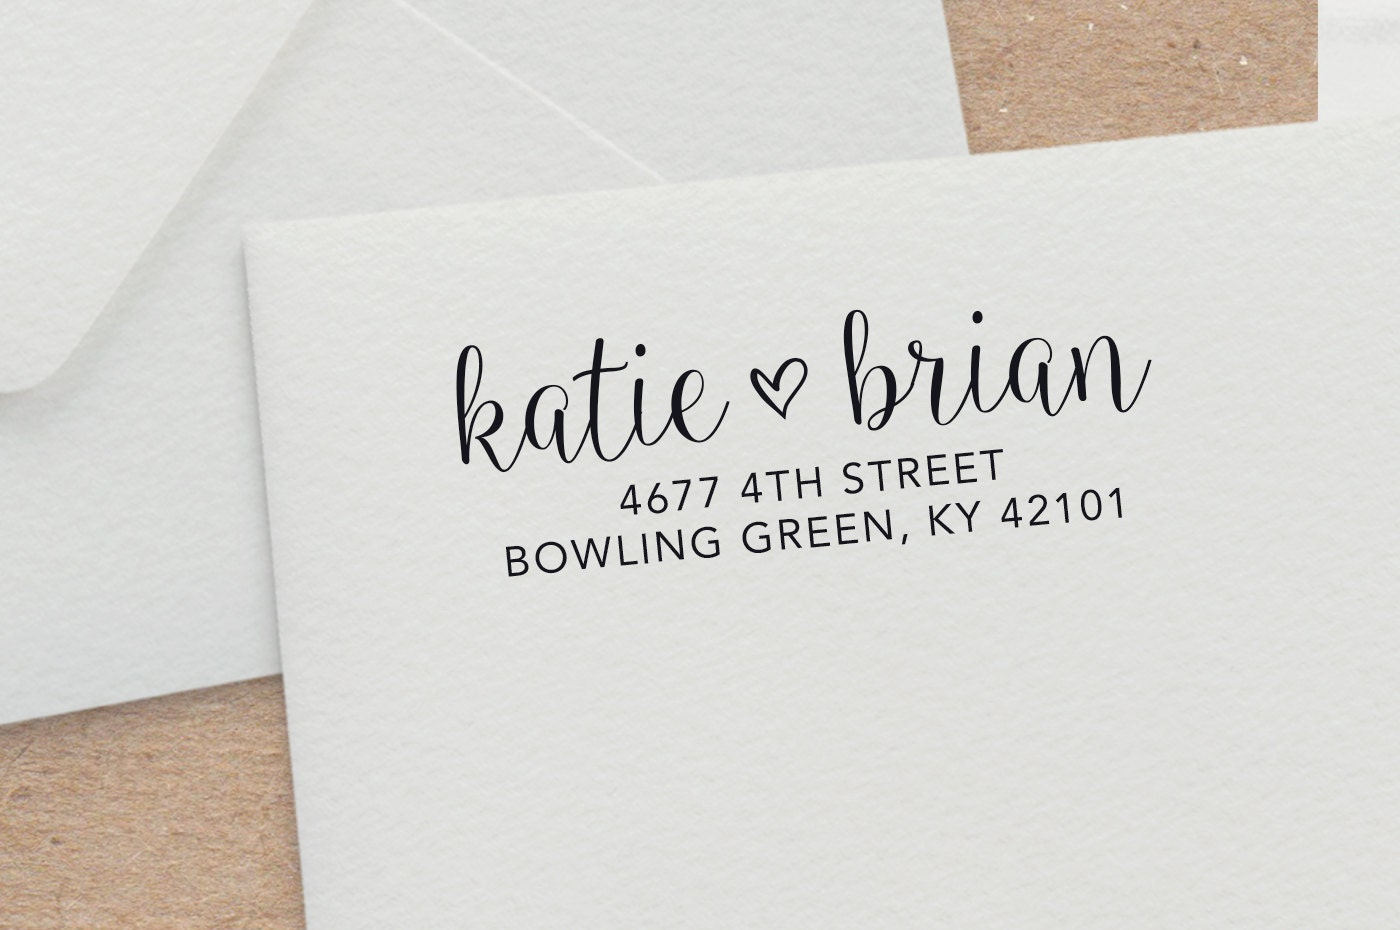 Stamps For Wedding Invitations: Custom Wedding Invitation Stamp Customized By BGregoryDesign